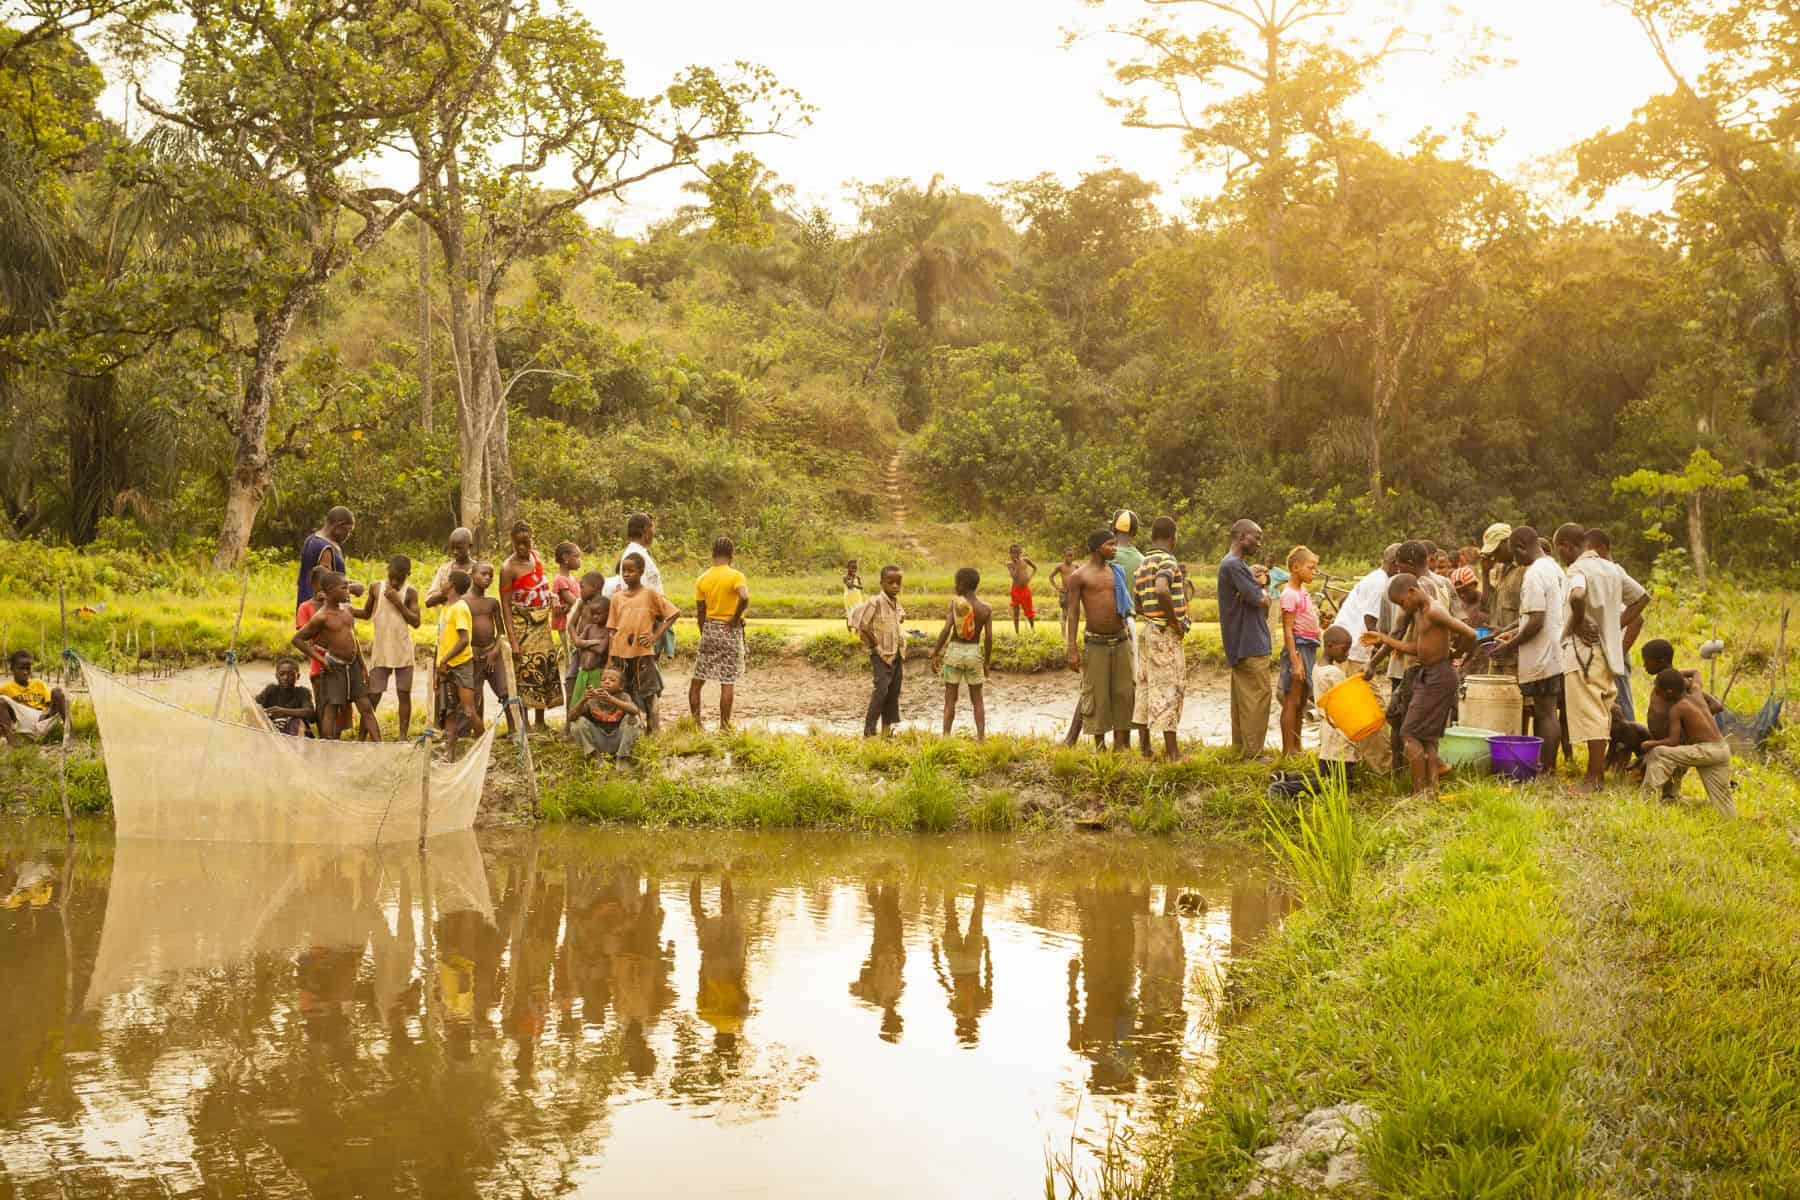 The muddy fish ponds are located deep in the  jungle of Liberia.